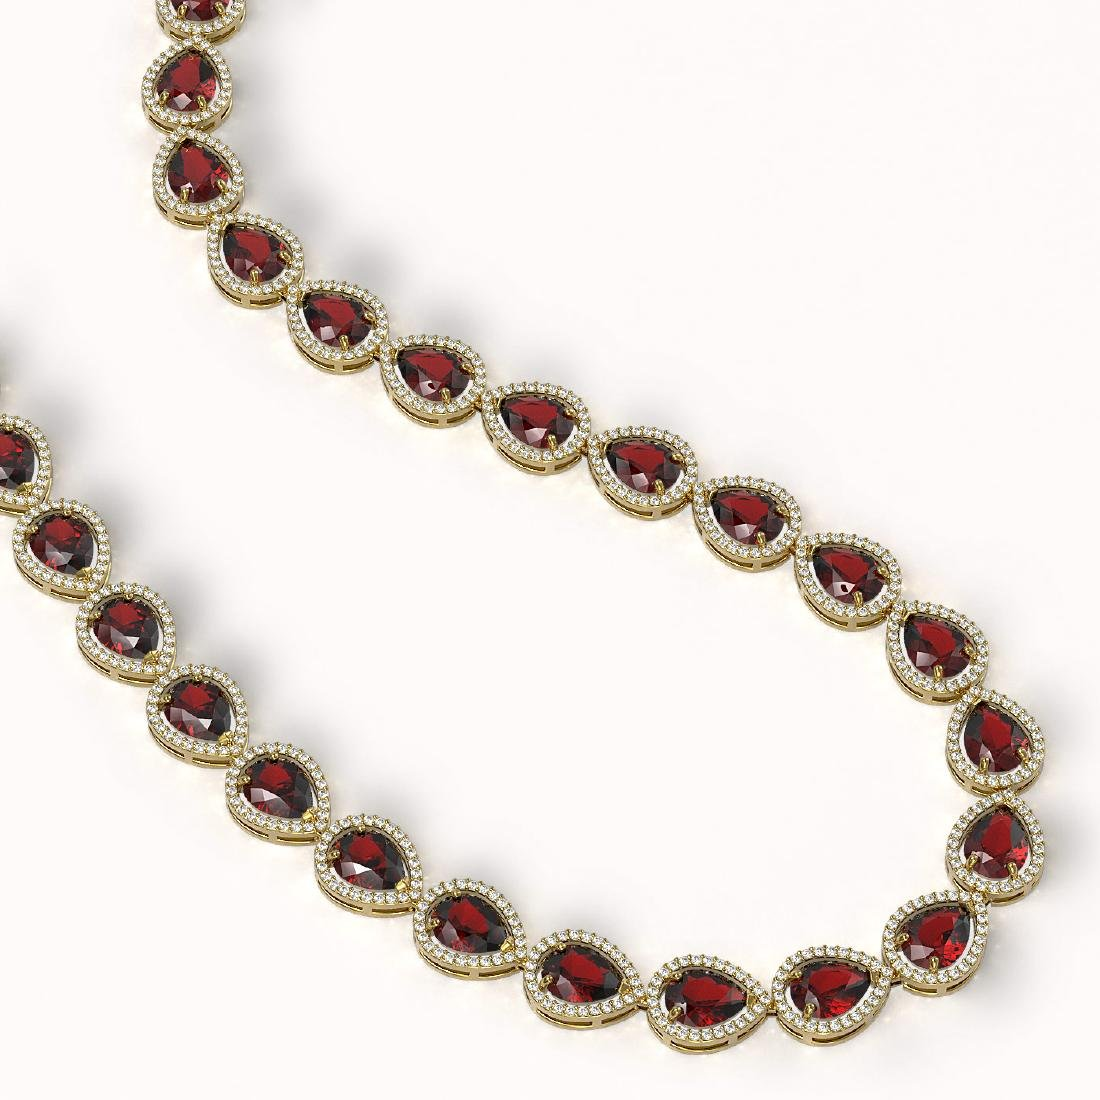 36.8 CTW Garnet & Diamond Halo Necklace 10K Yellow Gold - 2